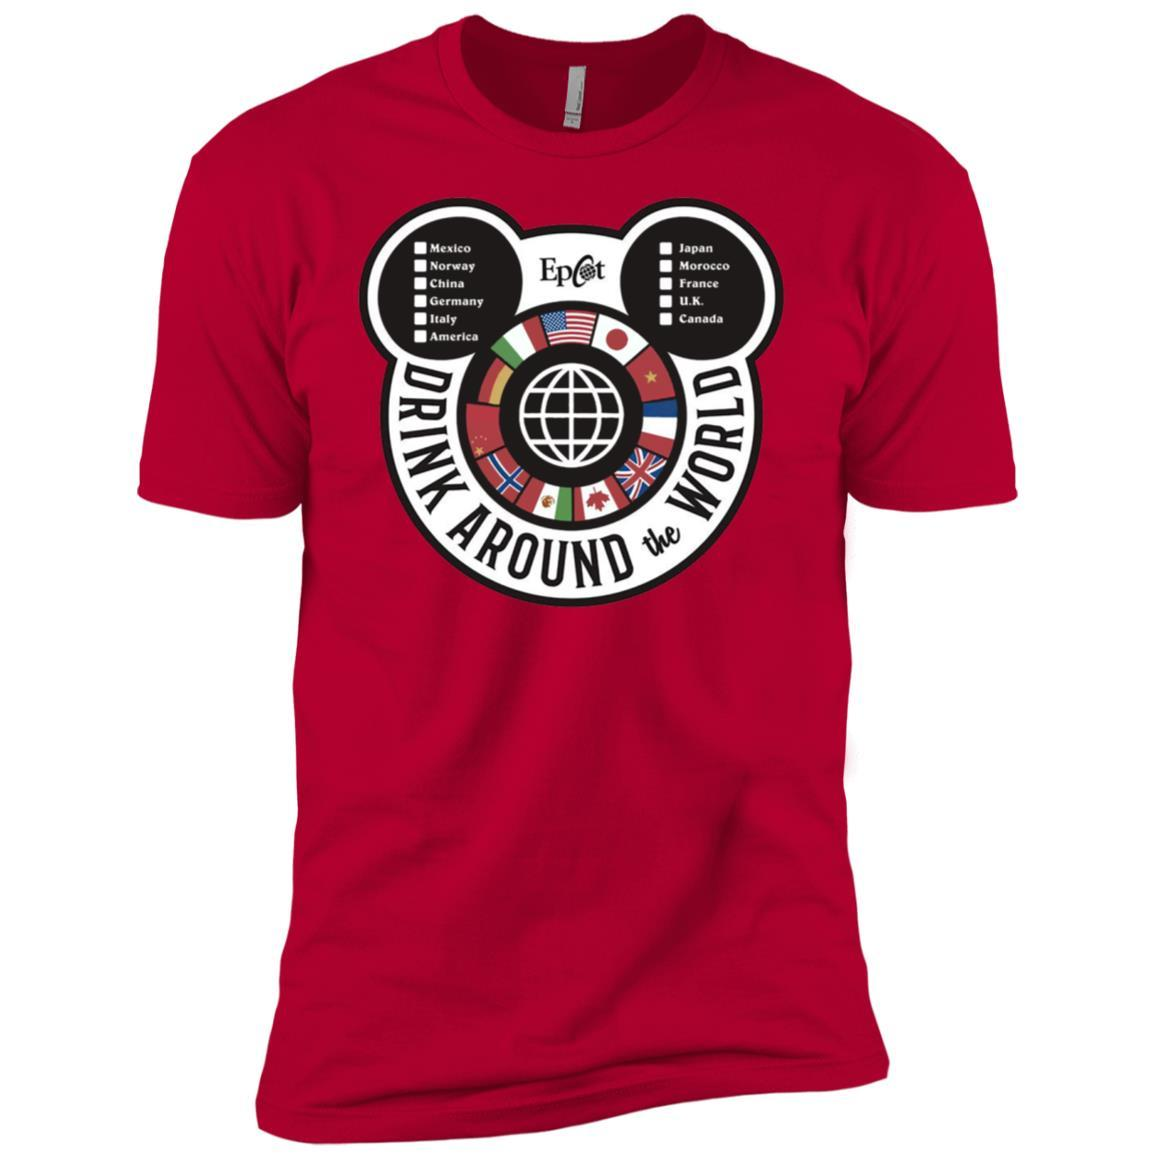 Drink Around the World - EPCOT Checklist - Short Sleeve T-Shirt Red / 4XL